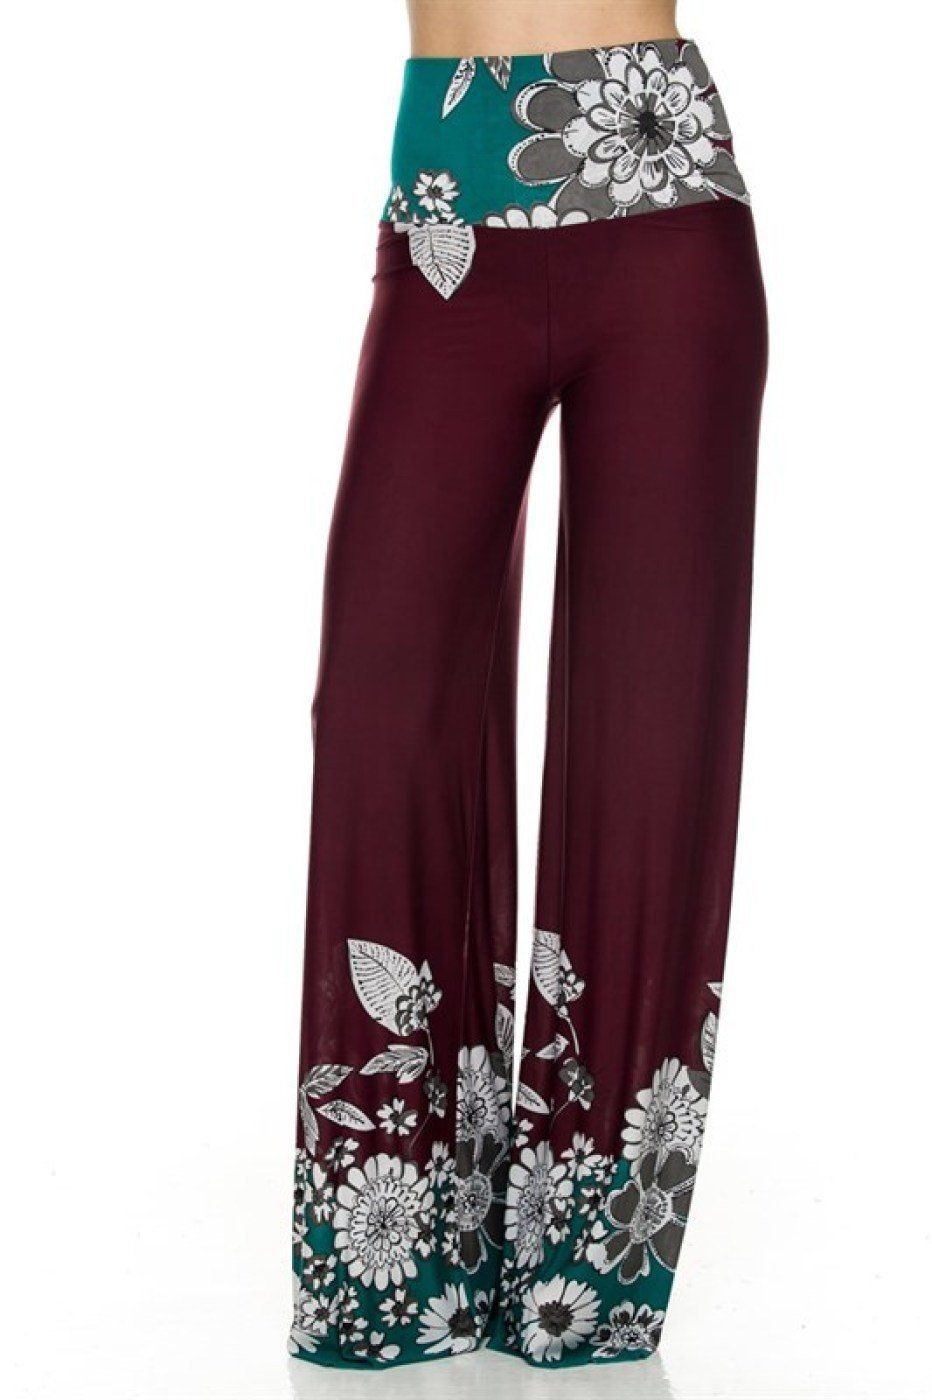 46683873cef 2LUV Women s Printed High Waisted Palazzo Pants at Amazon Women s Clothing  store